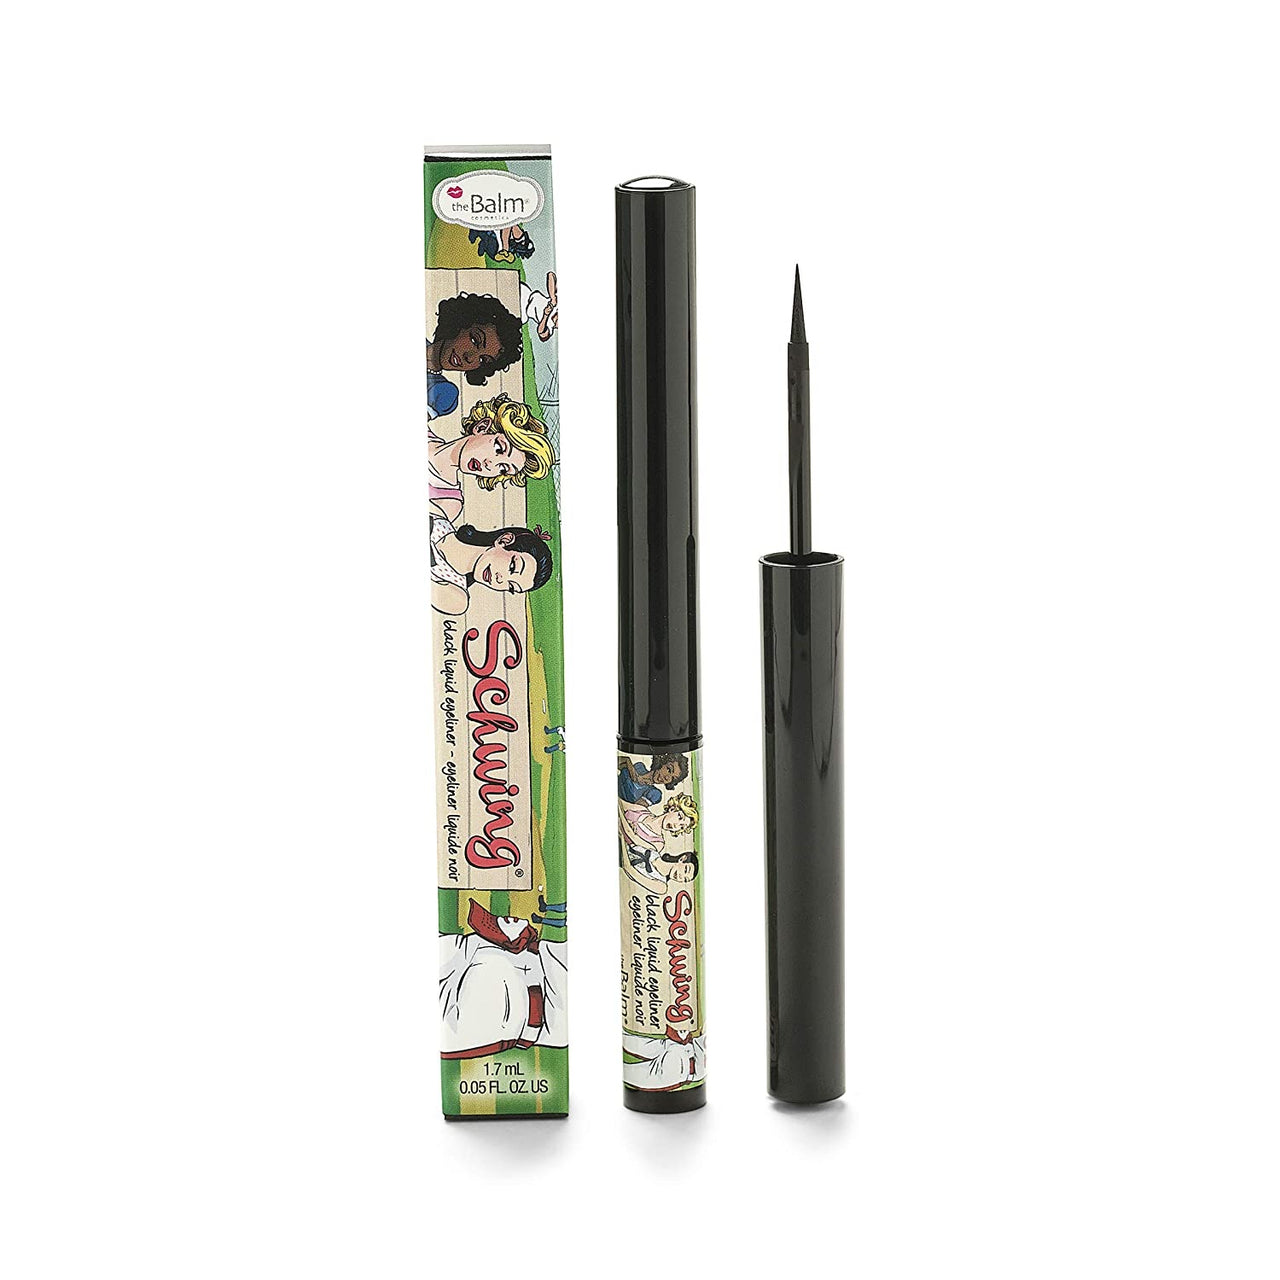 The Balm - Schwing Liquid Eyeliner - Black